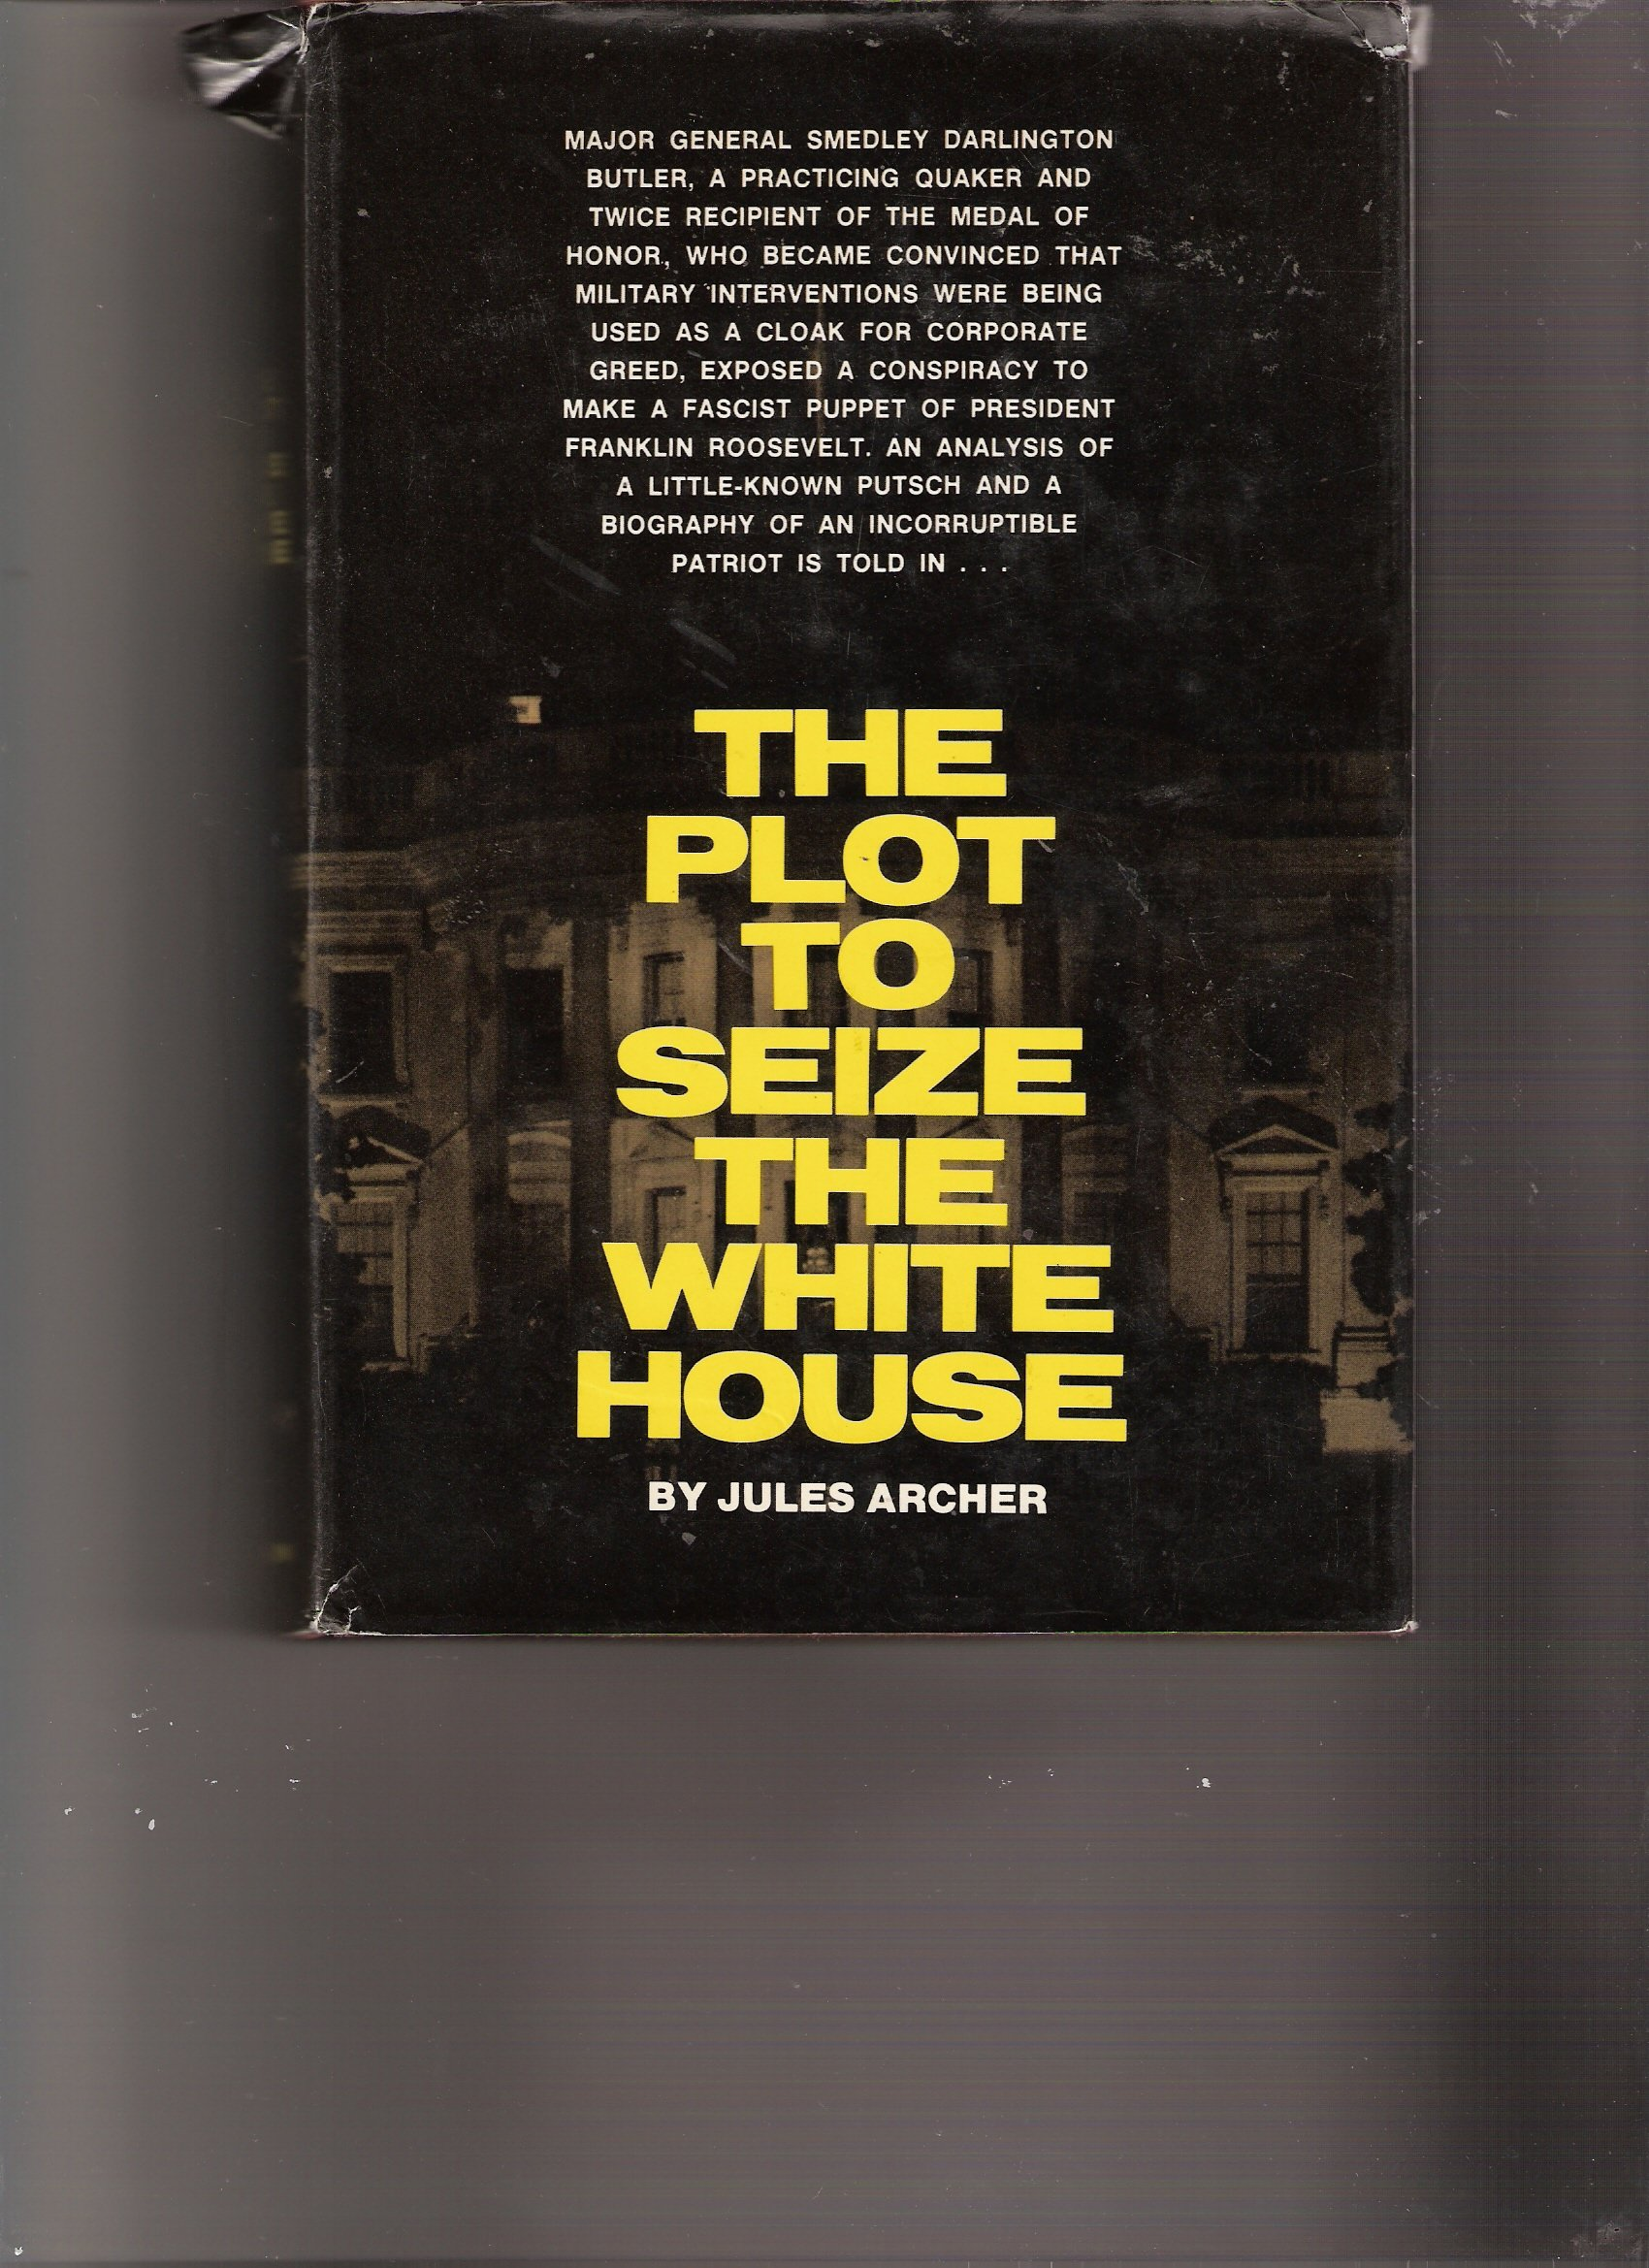 The plot to seize the White House: Amazon.es: Jules Archer: Libros